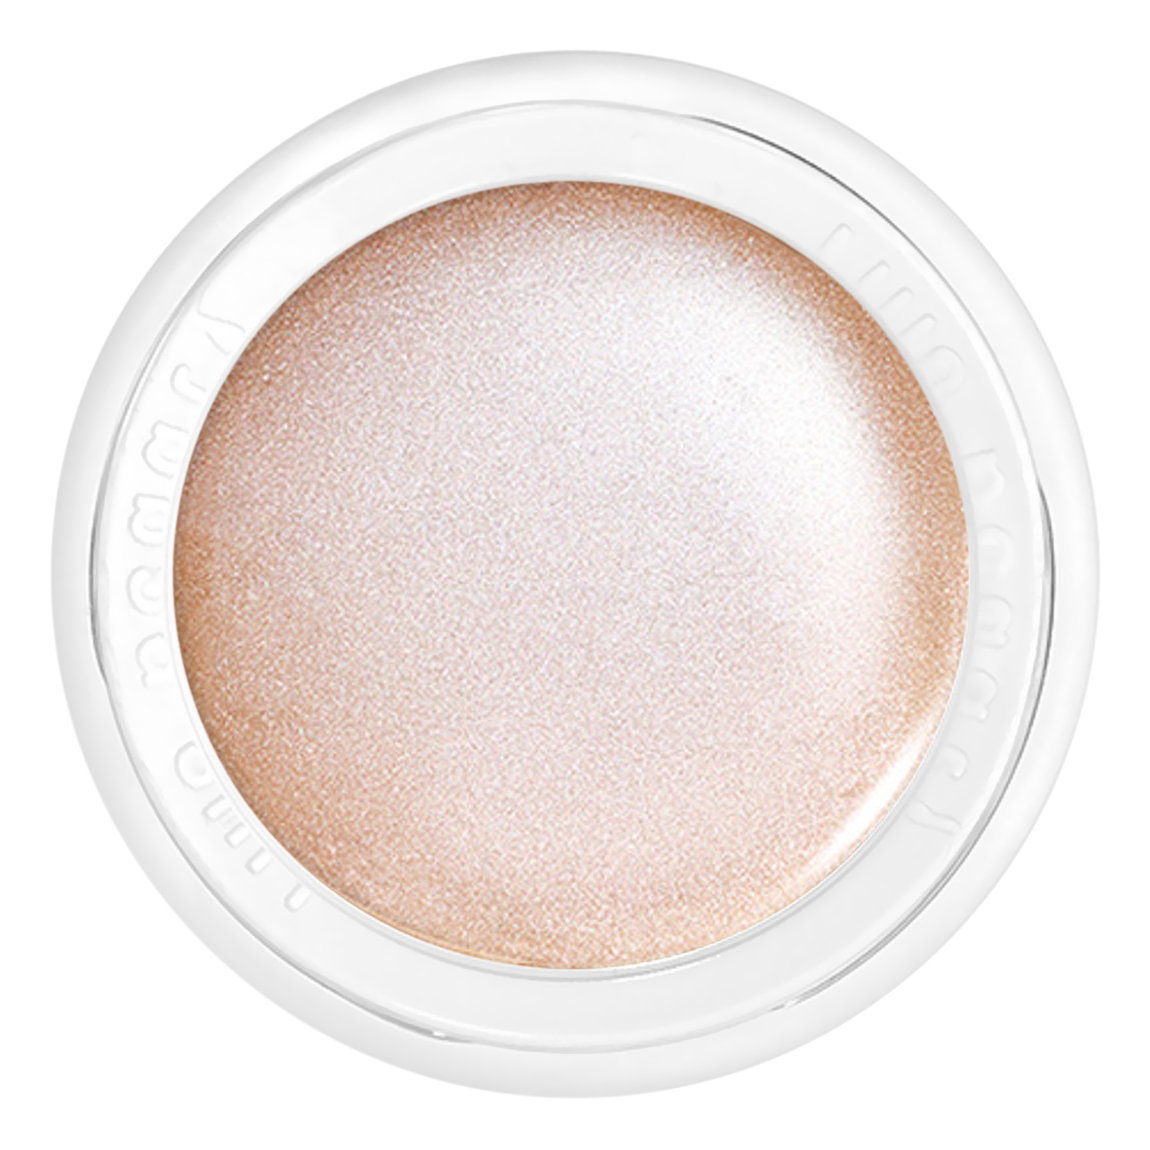 rms beauty Champagne Rosé Luminizer alternative view 1 - product swatch.